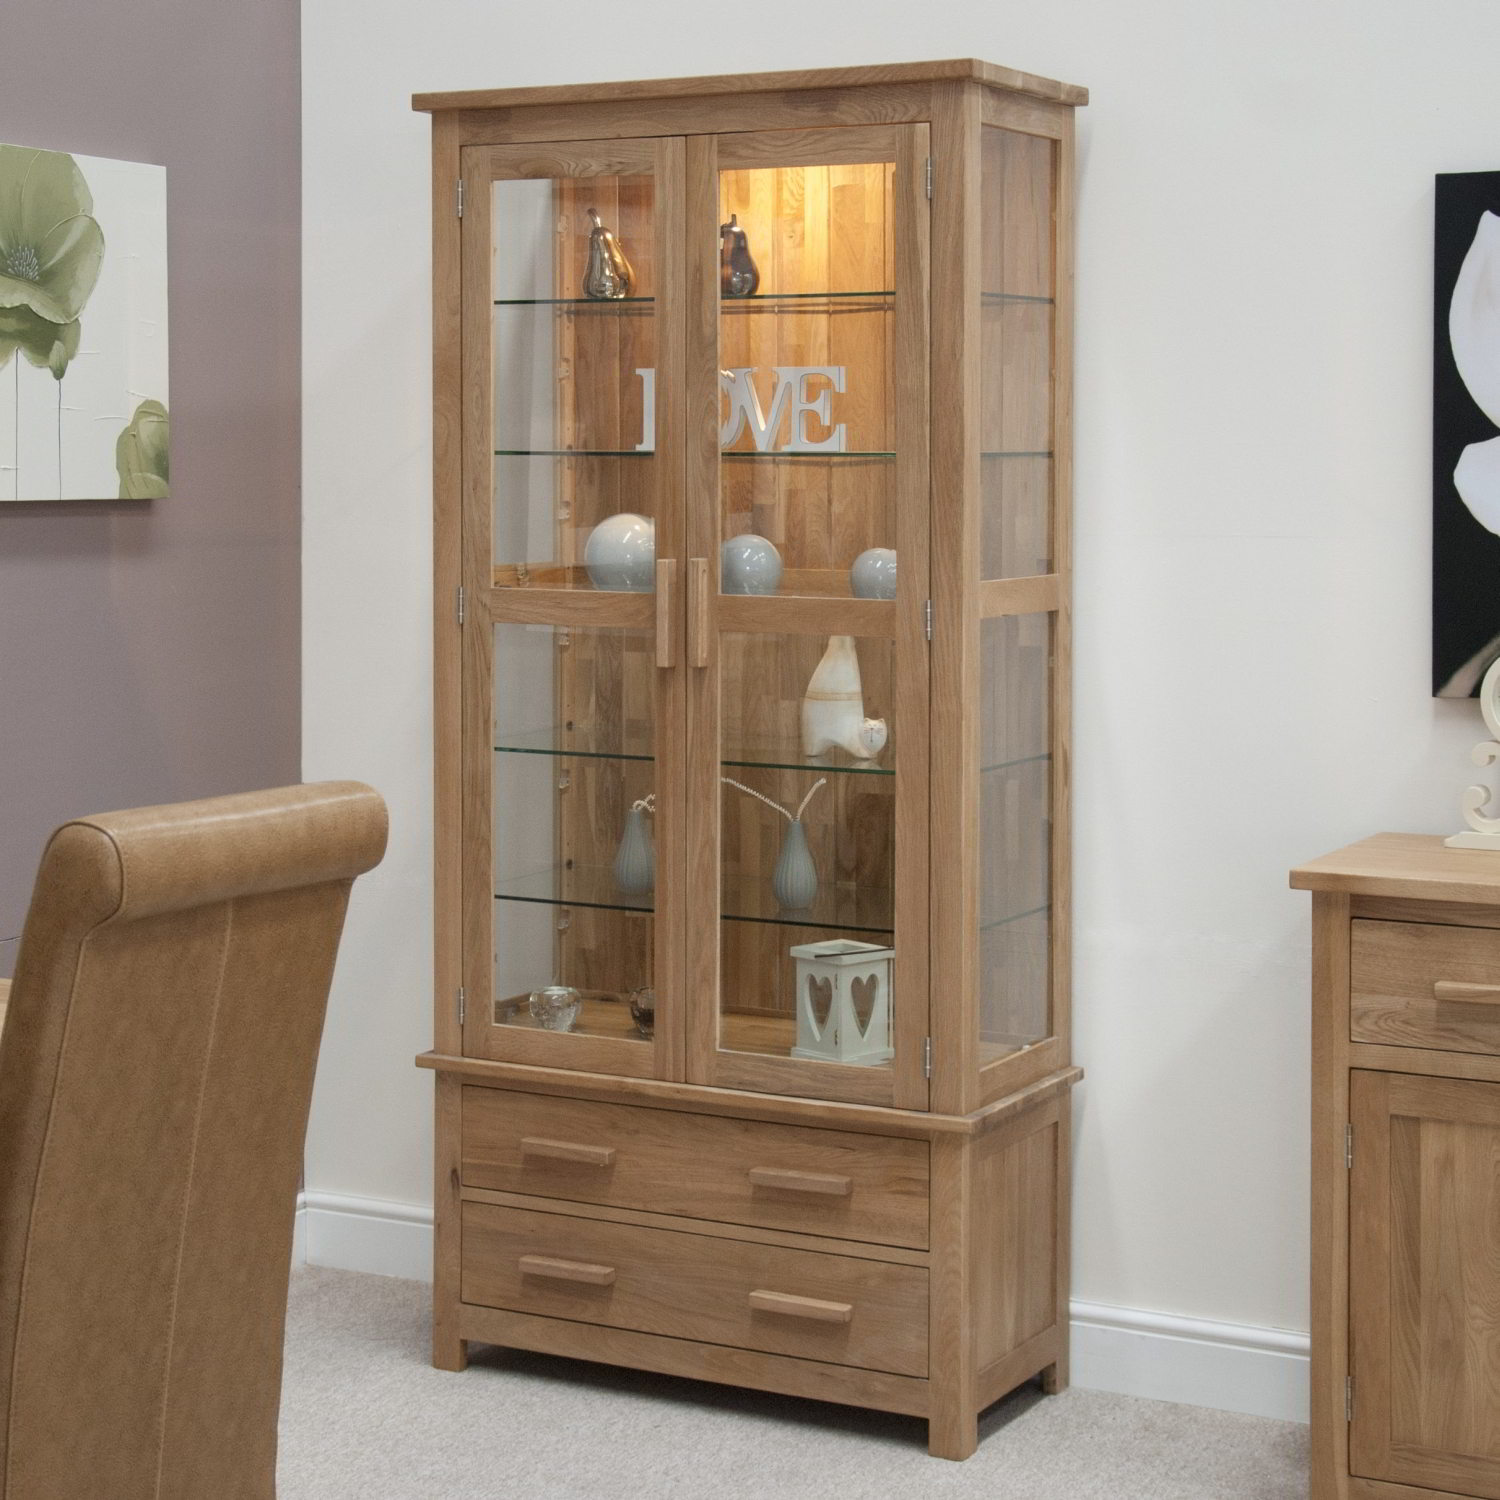 Eton solid oak living room furniture glazed display for Cupboards and cabinets